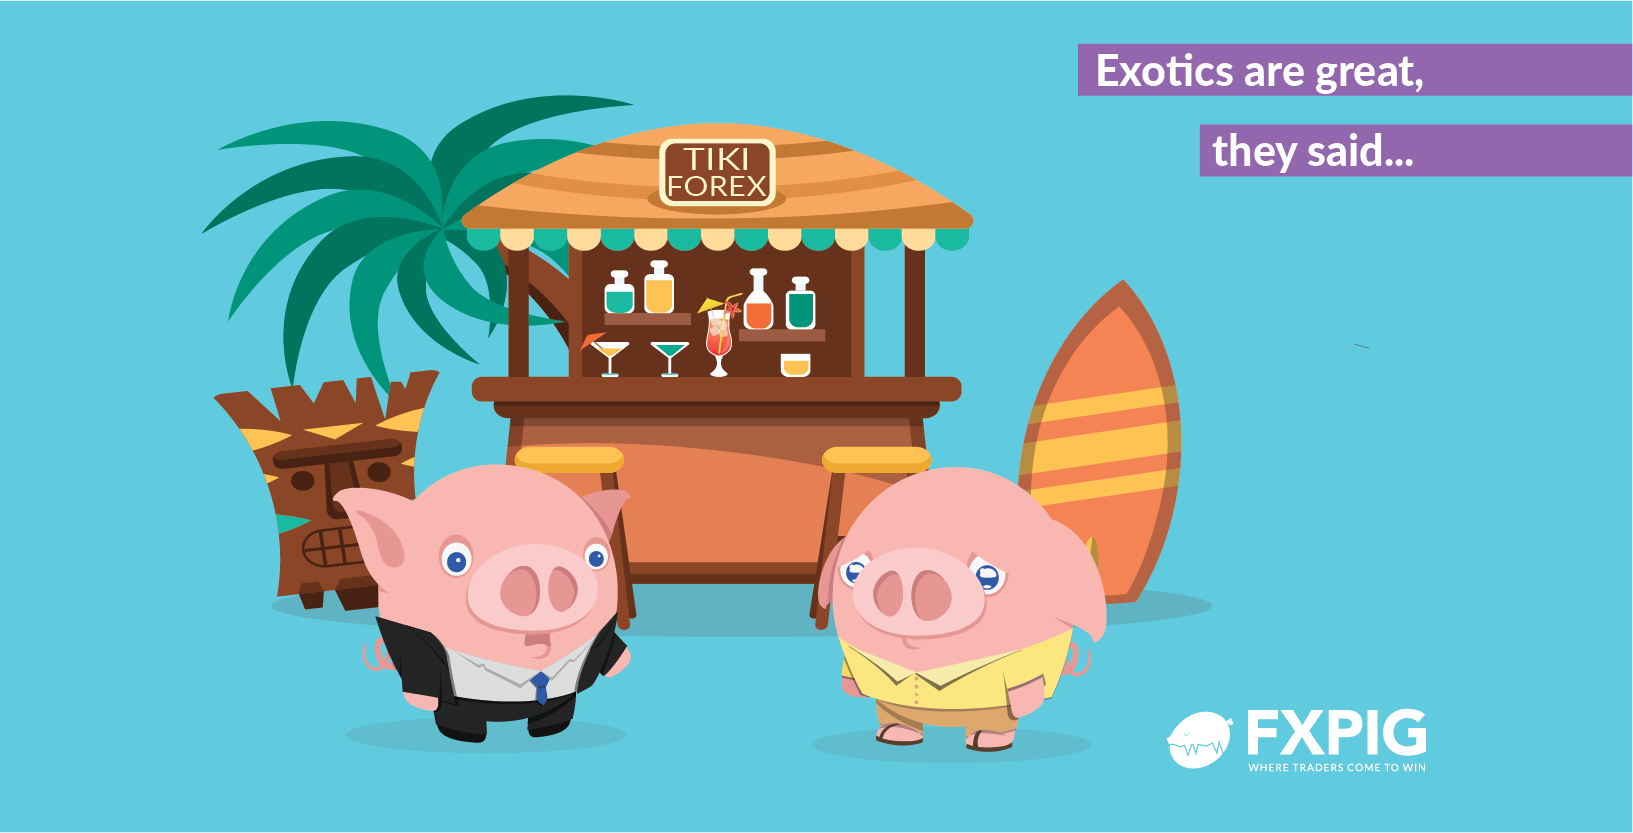 FOREX_exotic-great-for-coctails-bad-for-traders2405_FXPIG